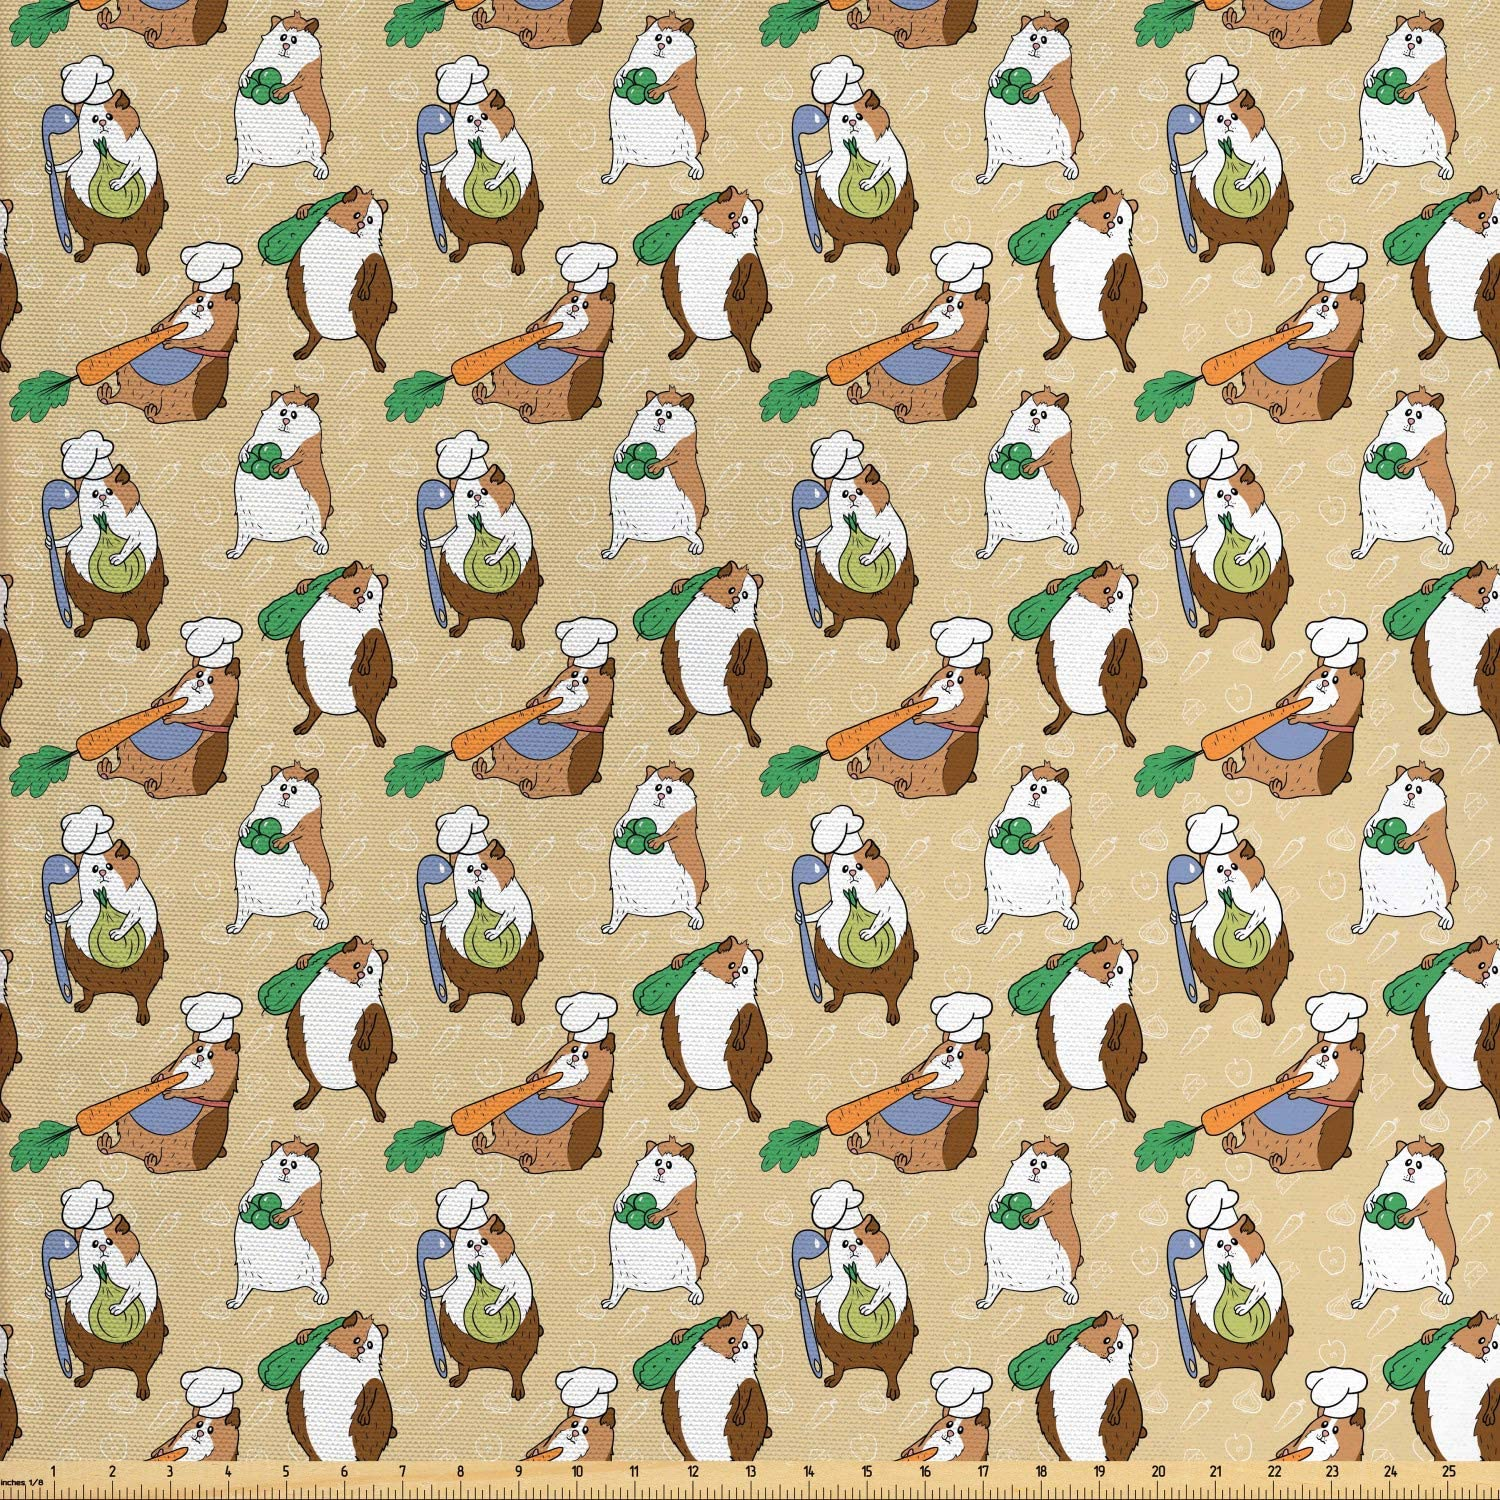 Lunarable Guinea Pig Fabric by The Yard, Chef Teddy Pigs Carrying Carrot Onion Ladle and Green Beans on Doodled Backdrop, Decorative Fabric for Upholstery and Home Accents, 1 Yard, Brown Camel